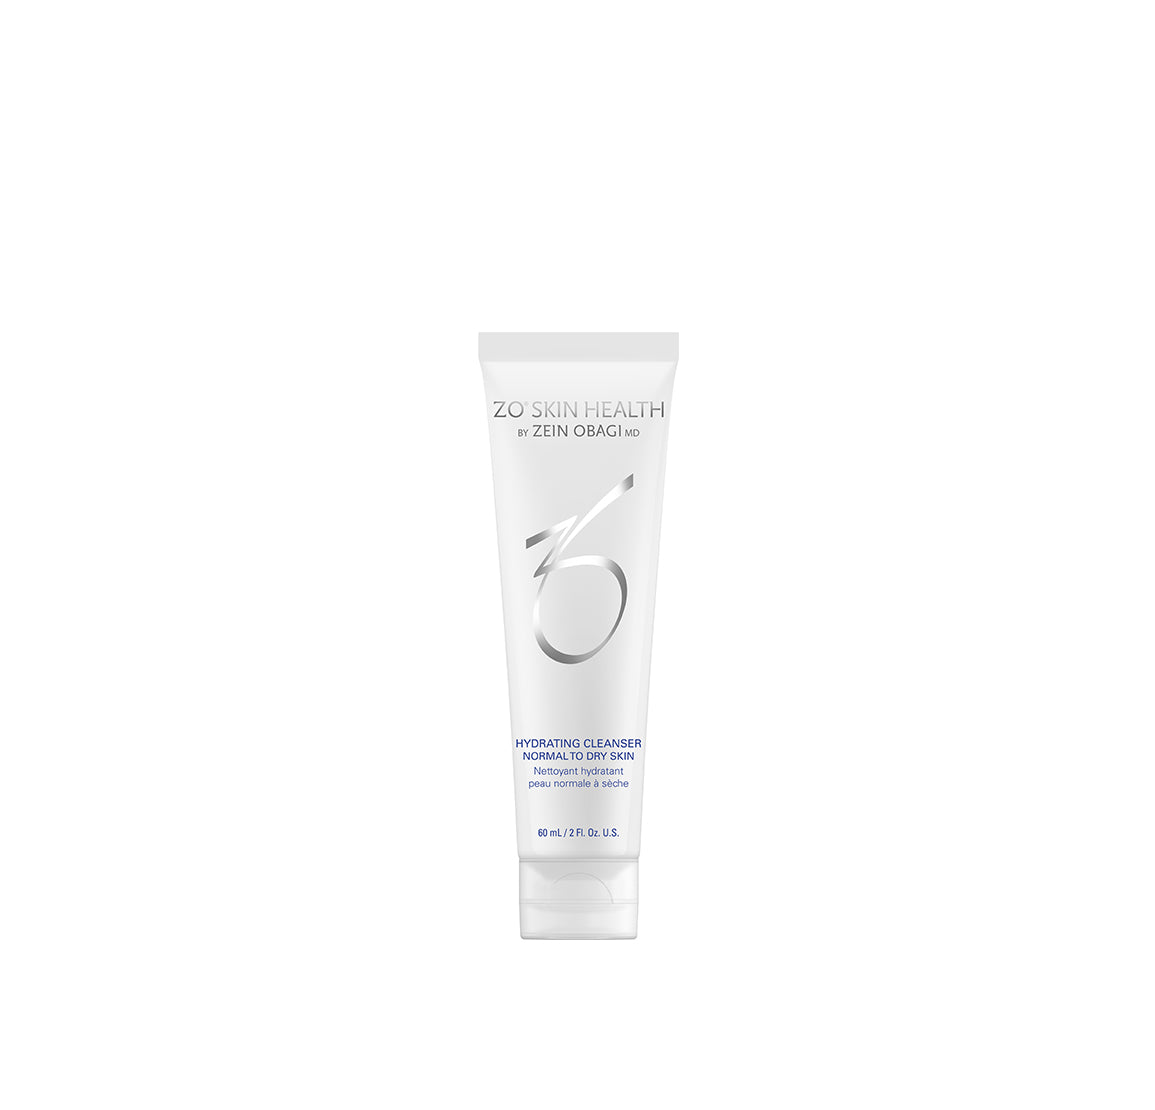 Hydrating Cleanser (travel size)